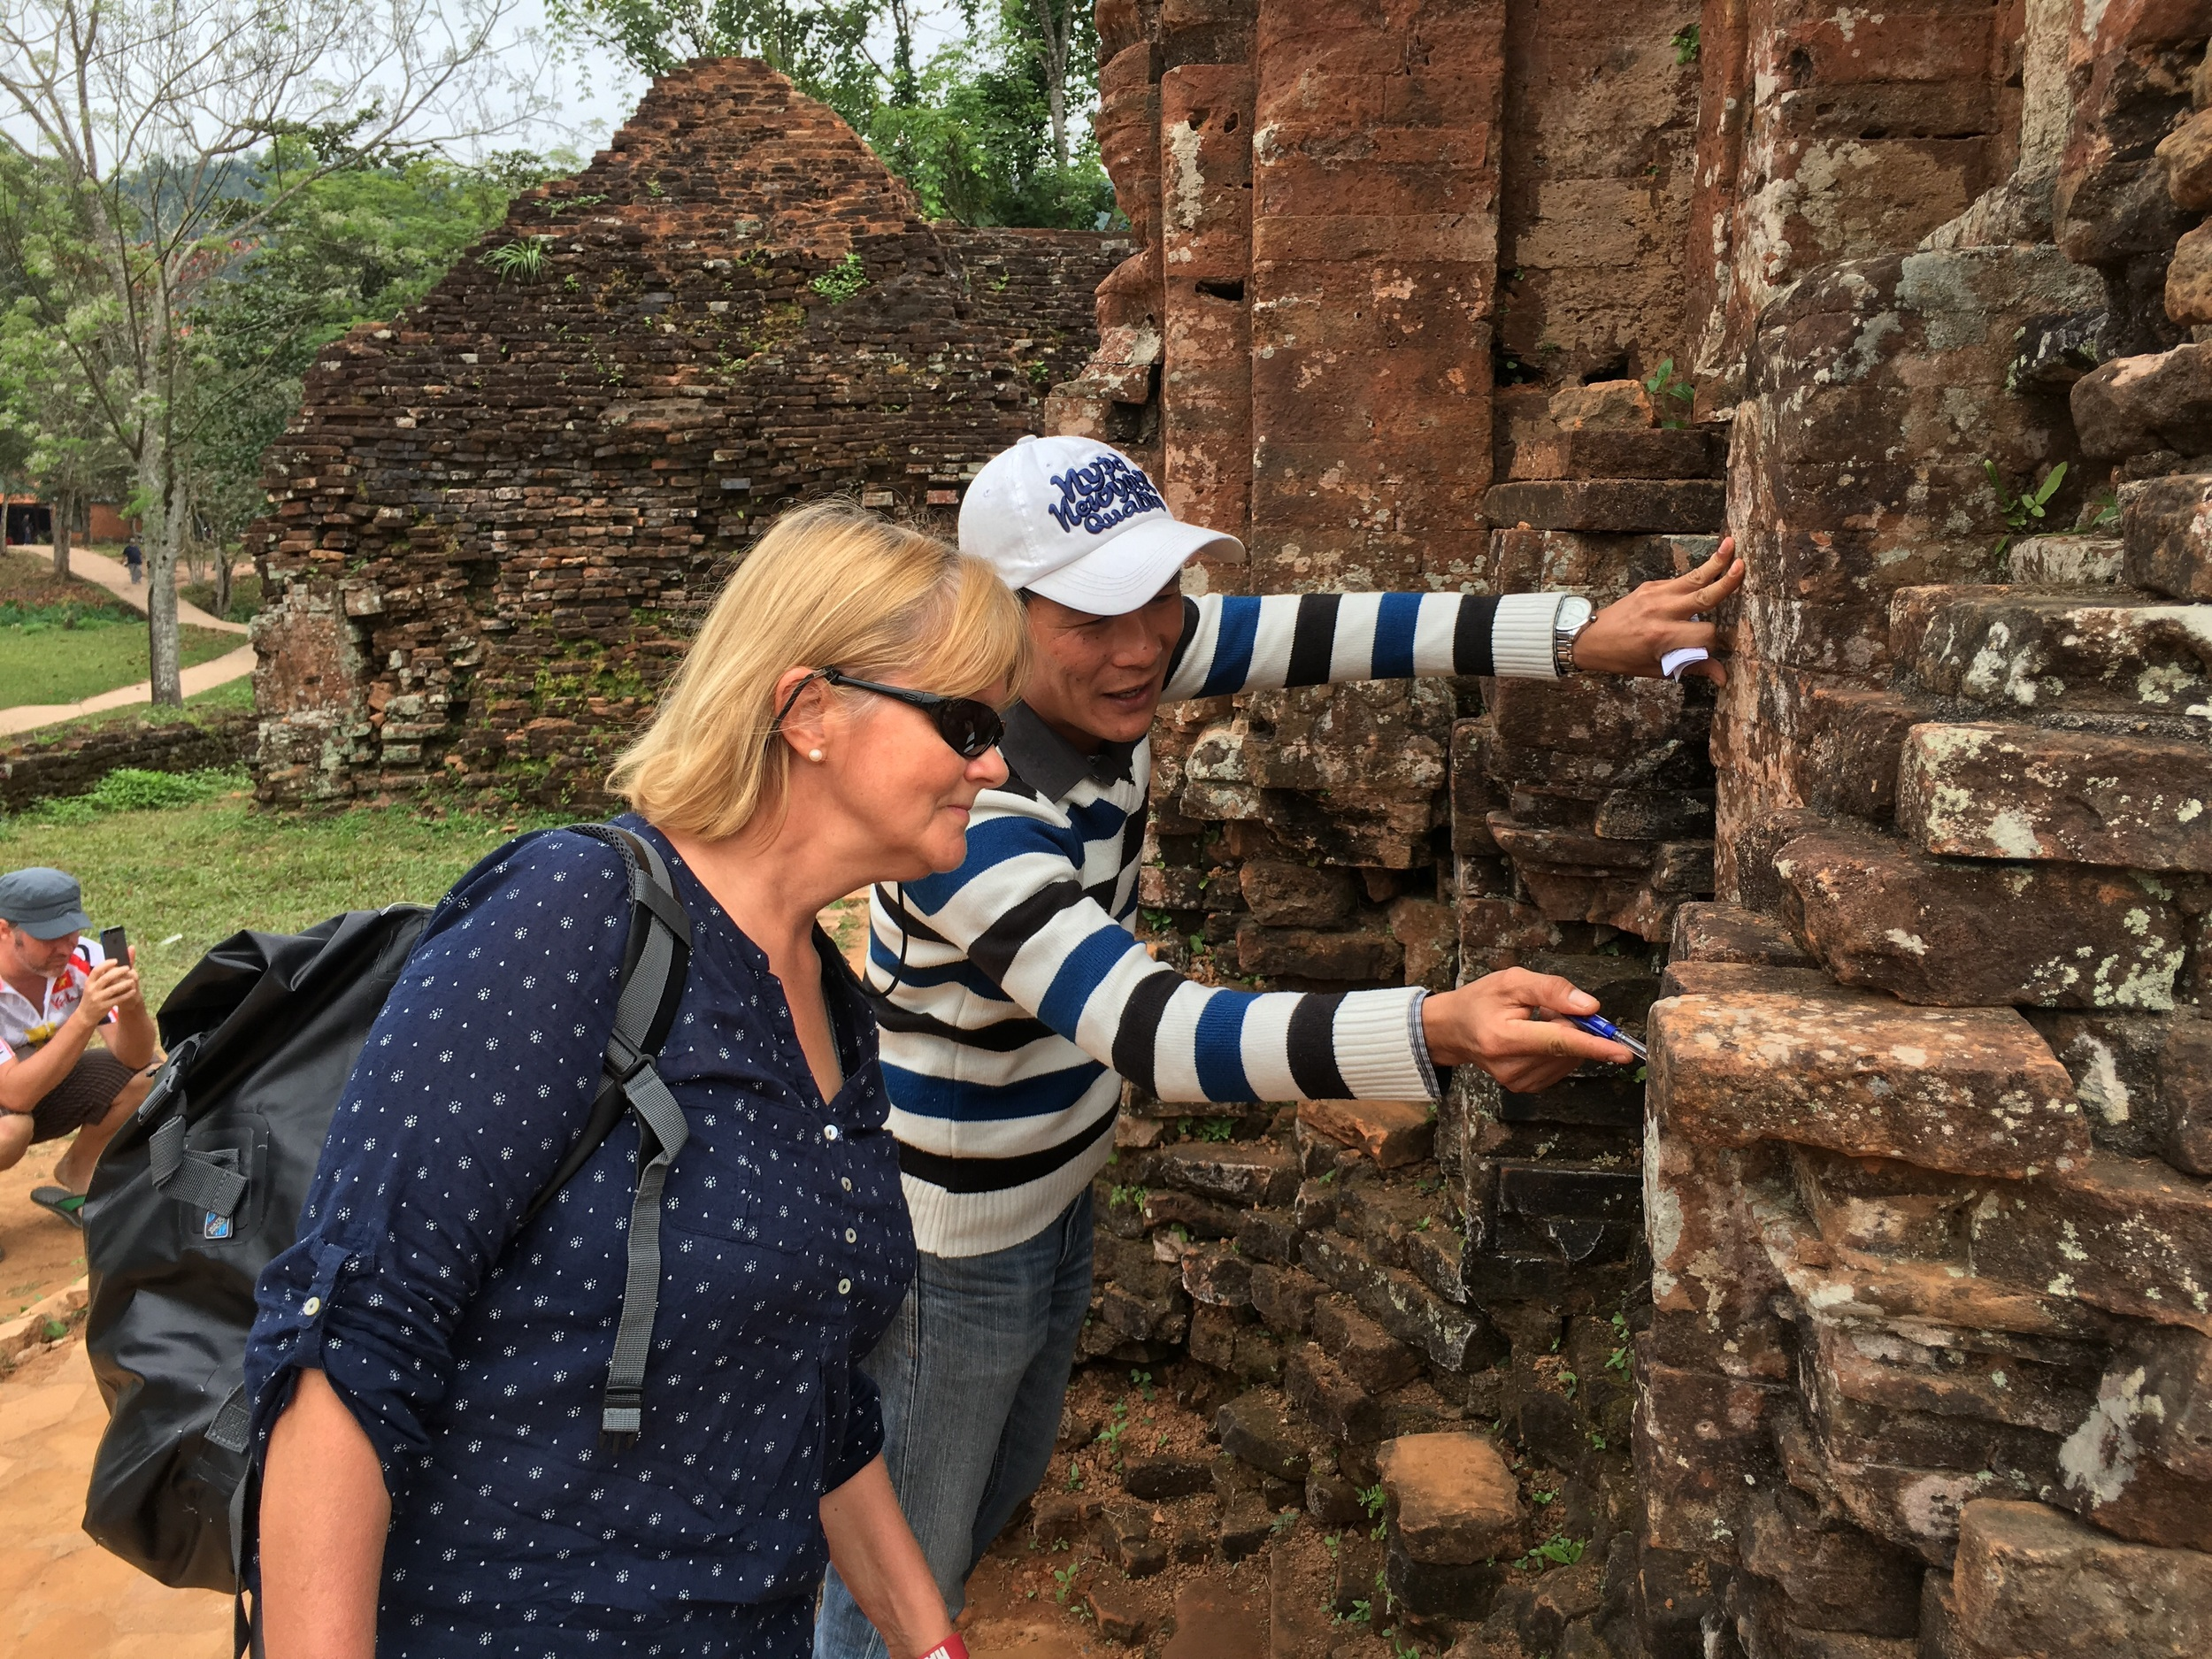 Quan points out the mystery of the absence of mortar in this 1000 year old archeological wonder.